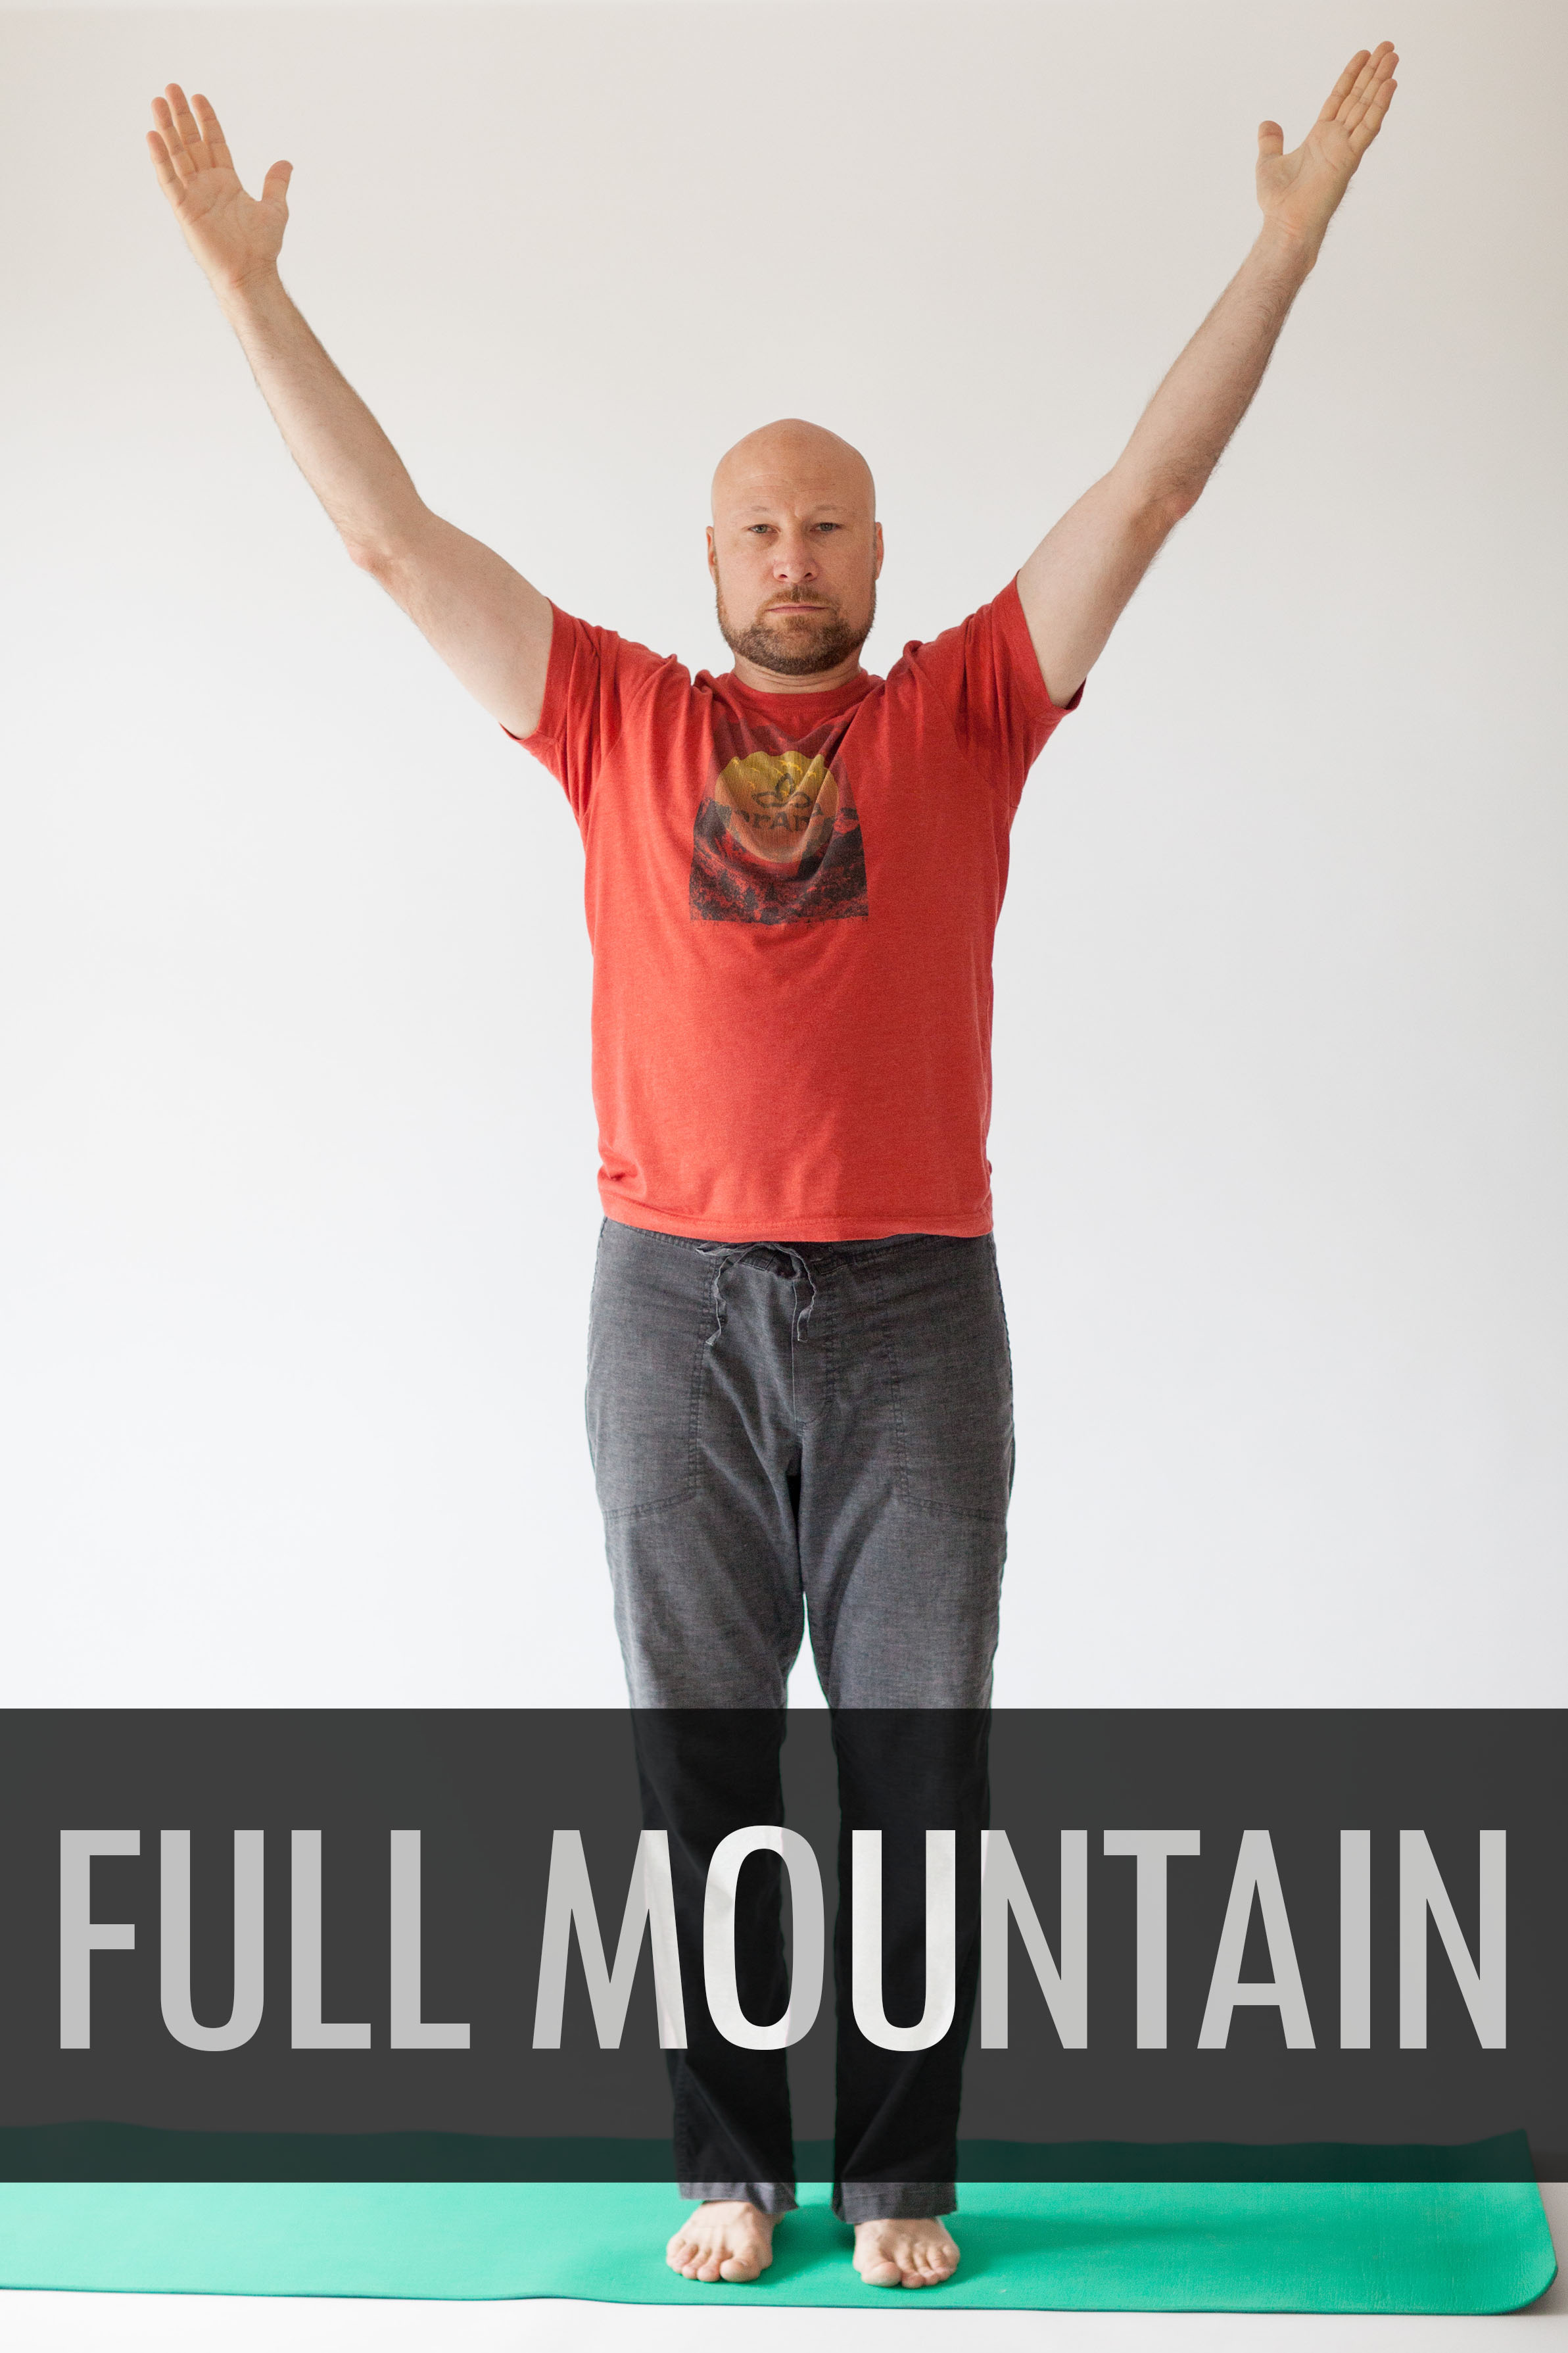 Full Mountain.jpg